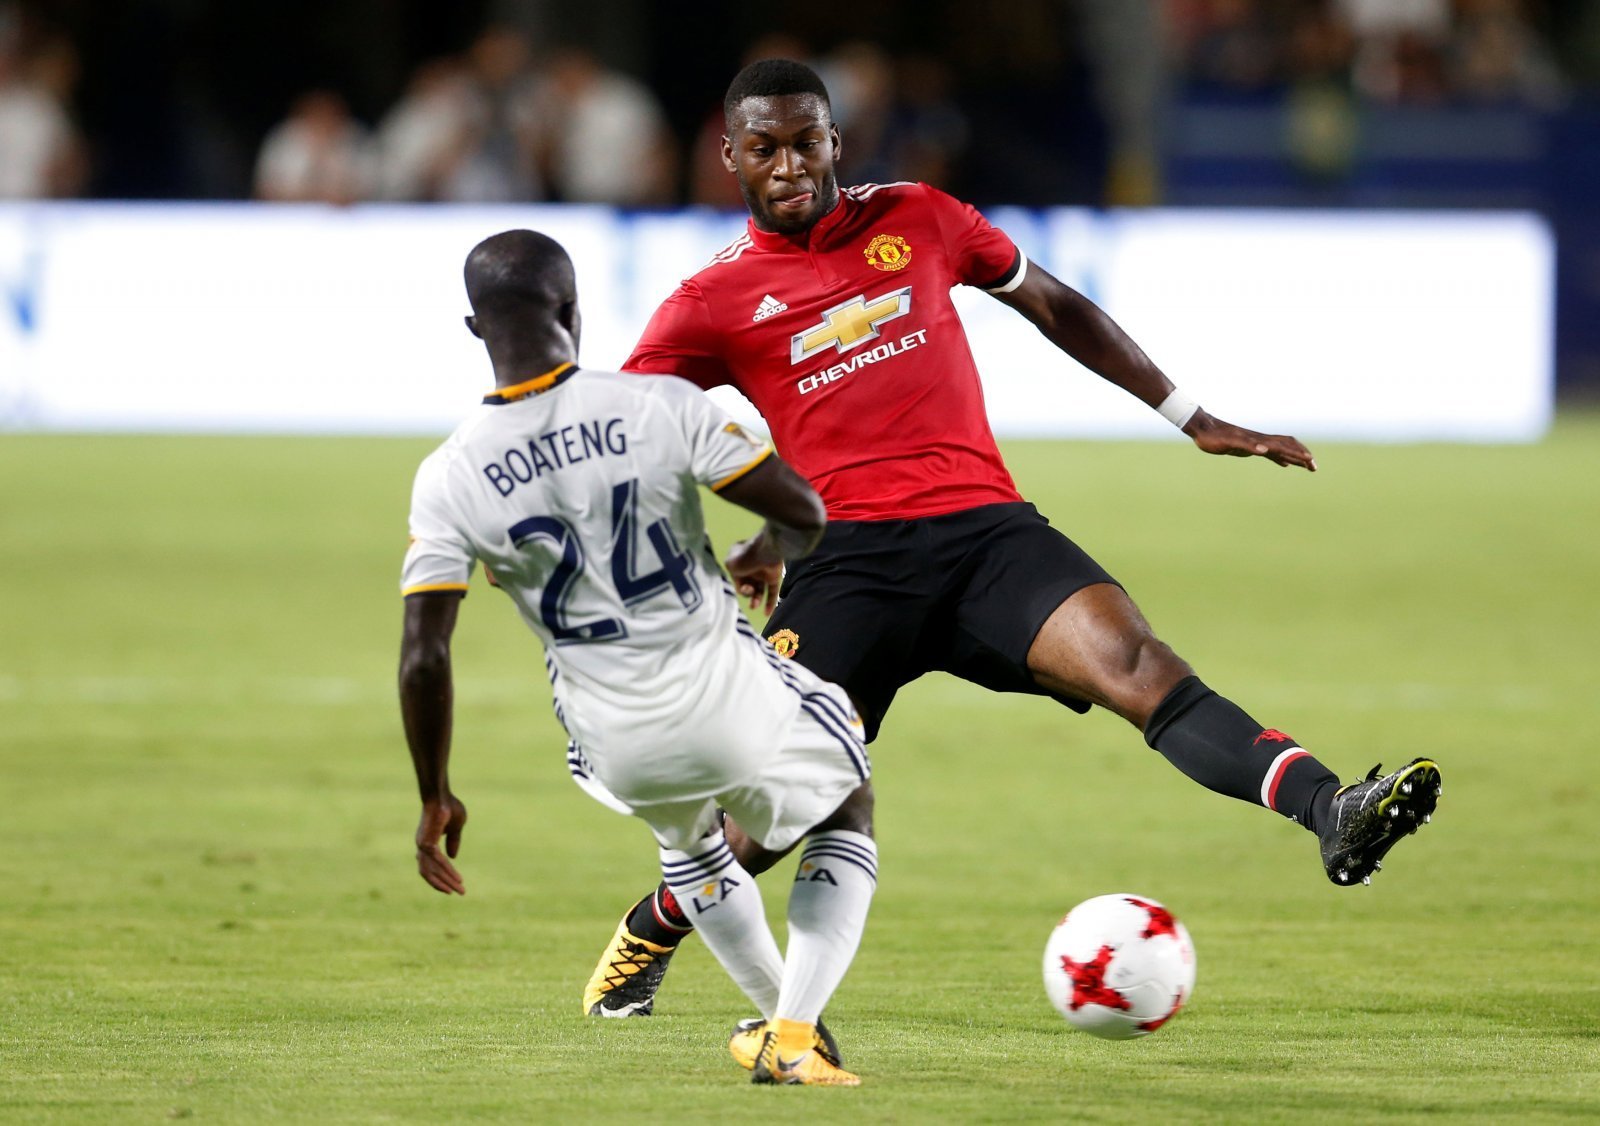 Fosu-Mensah could revive his best form with Aston Villa